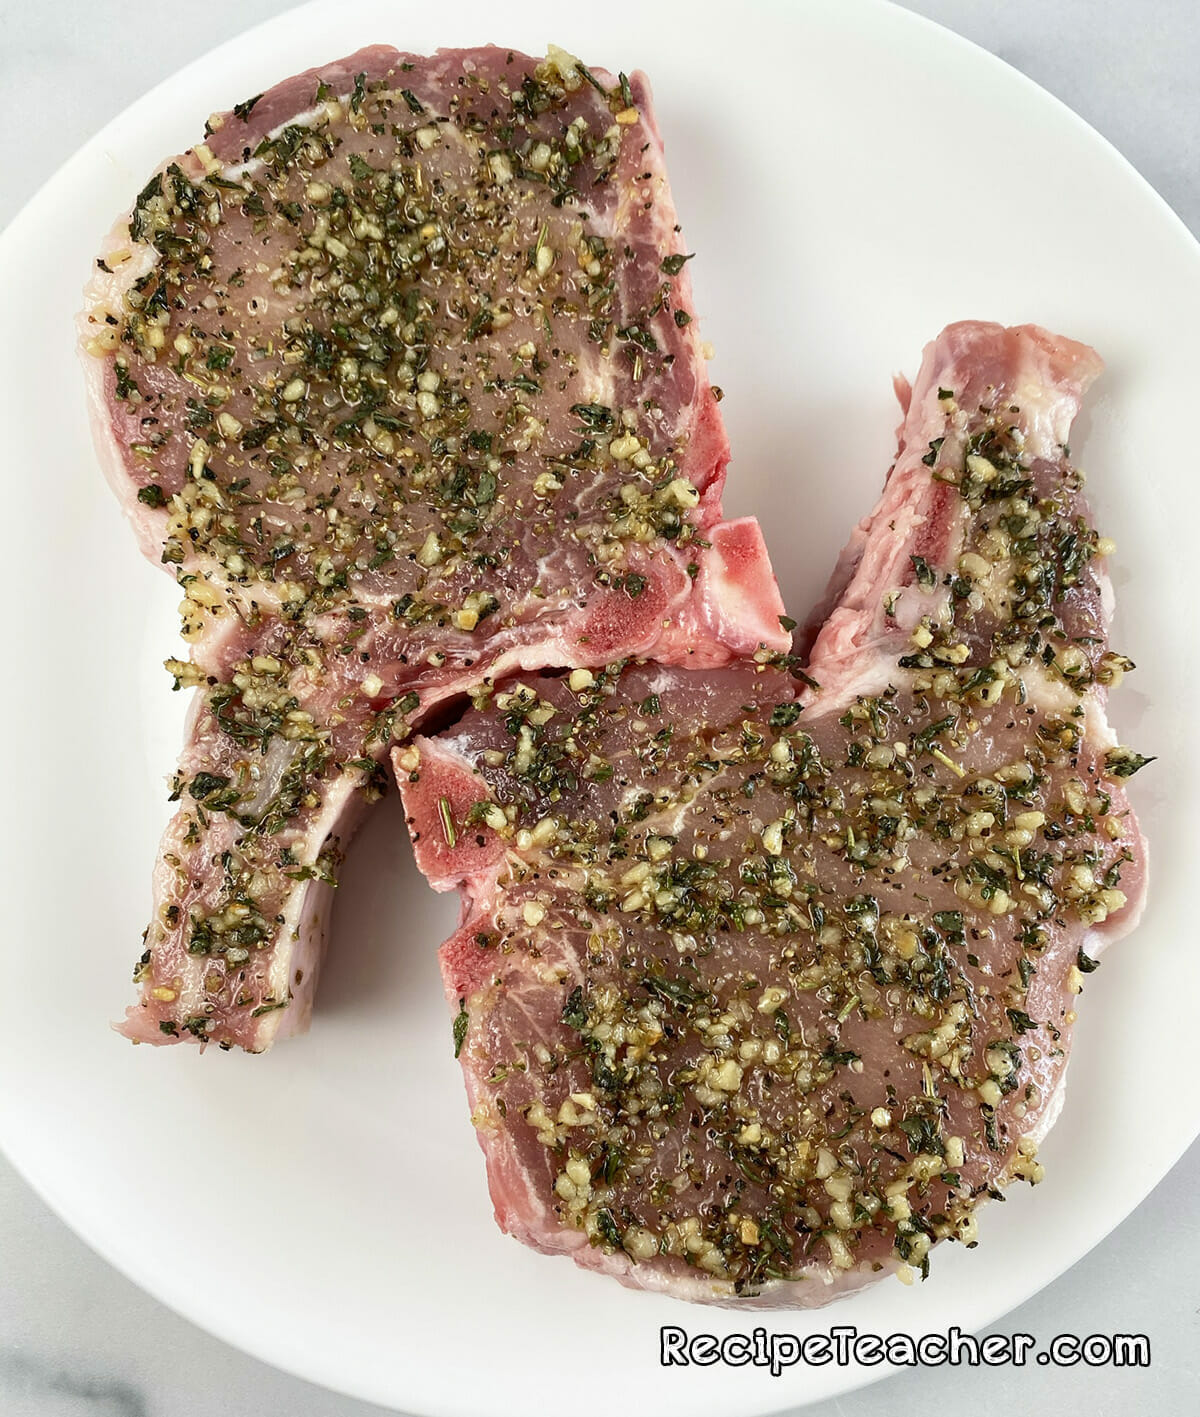 Recipe for thick and juicy air fryer pork chops. Pork chops are seasoned and ready for the air fryer.